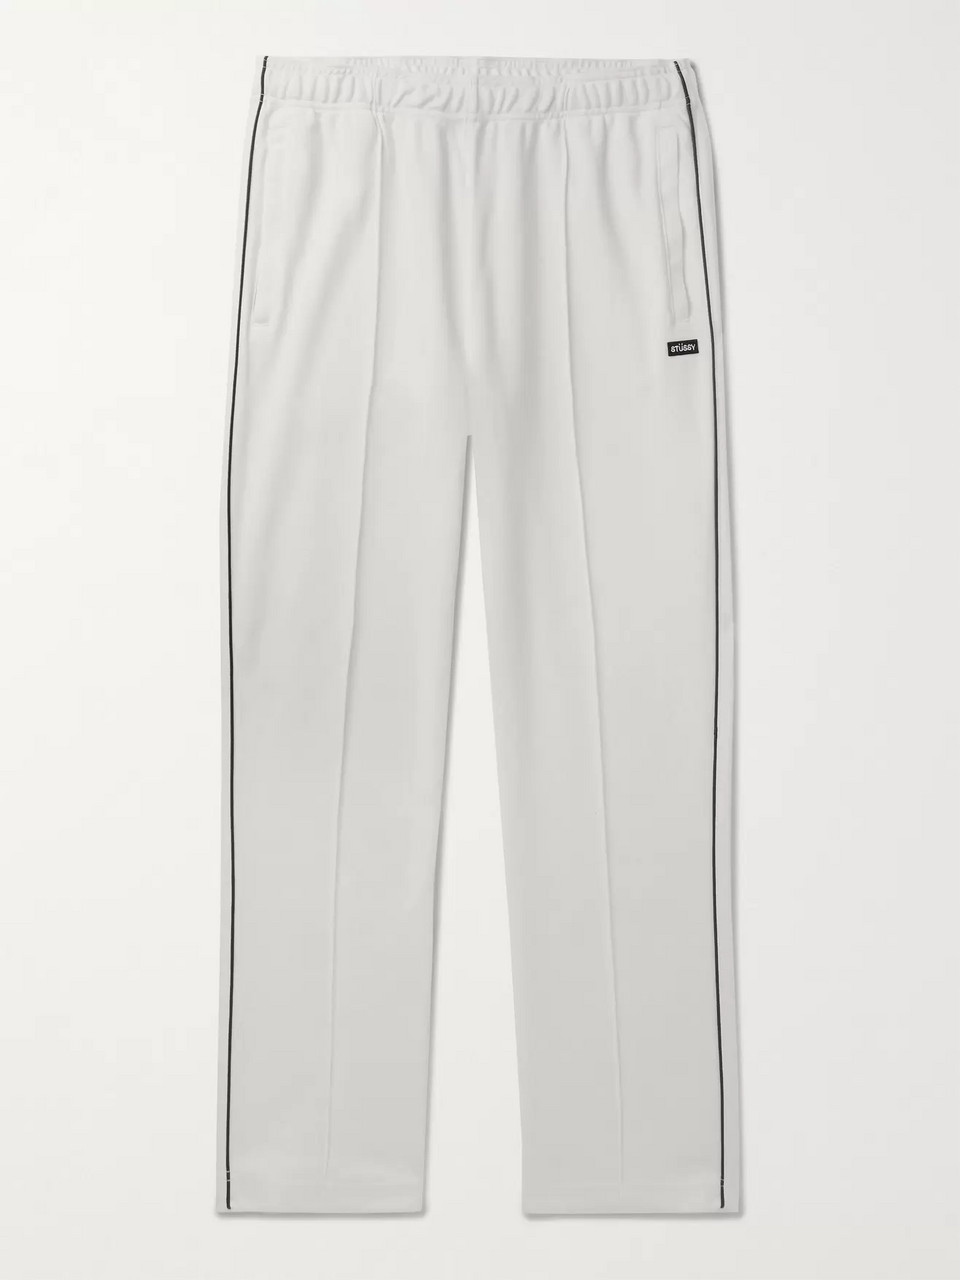 Stüssy Piped Cotton-Blend Piqué Sweatpants